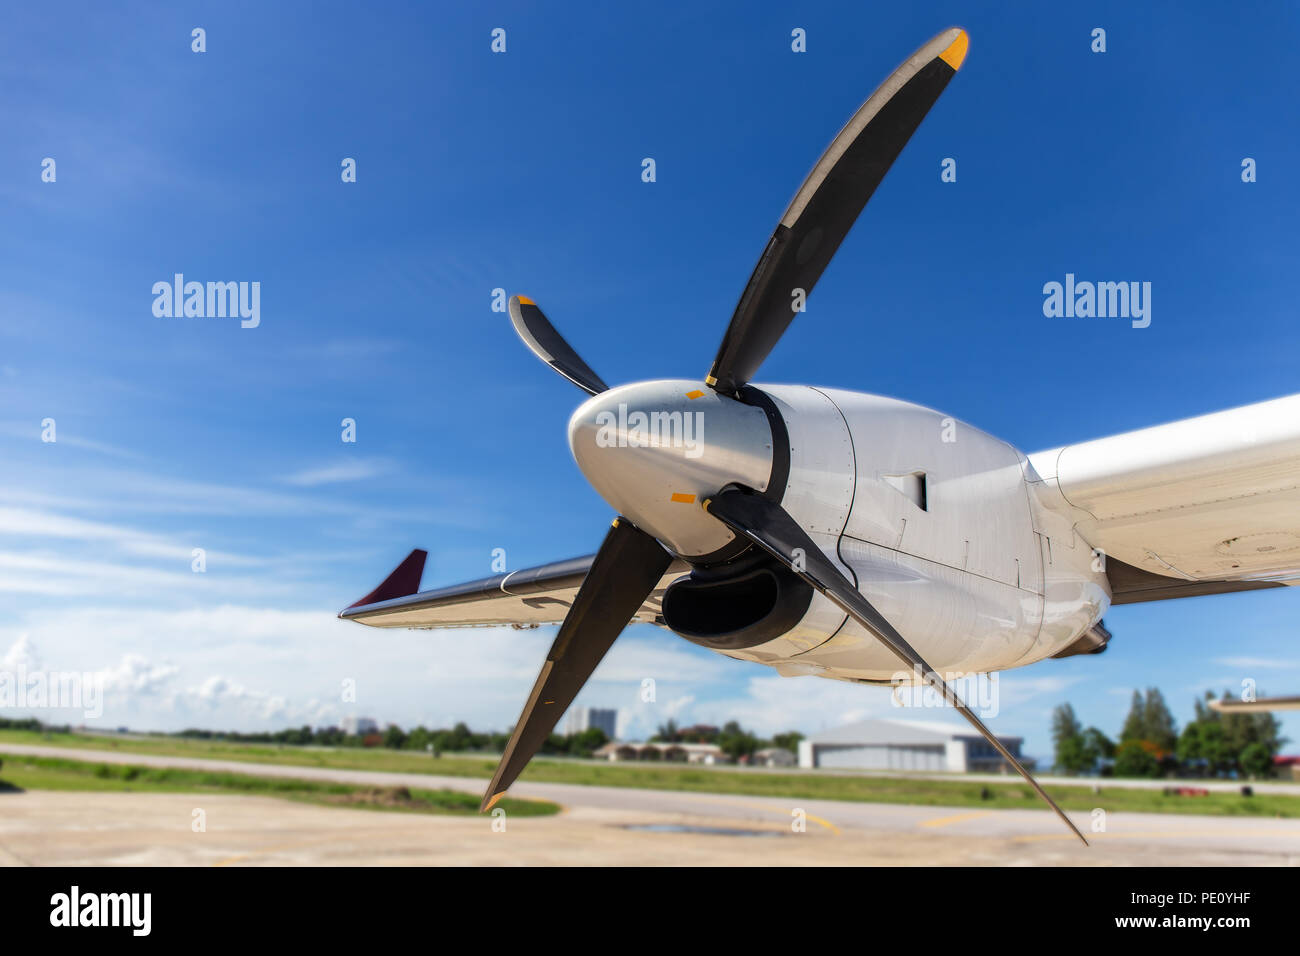 aircraft propeller blade and turboprop engines with airfield, blue sky background and copy space - Stock Image